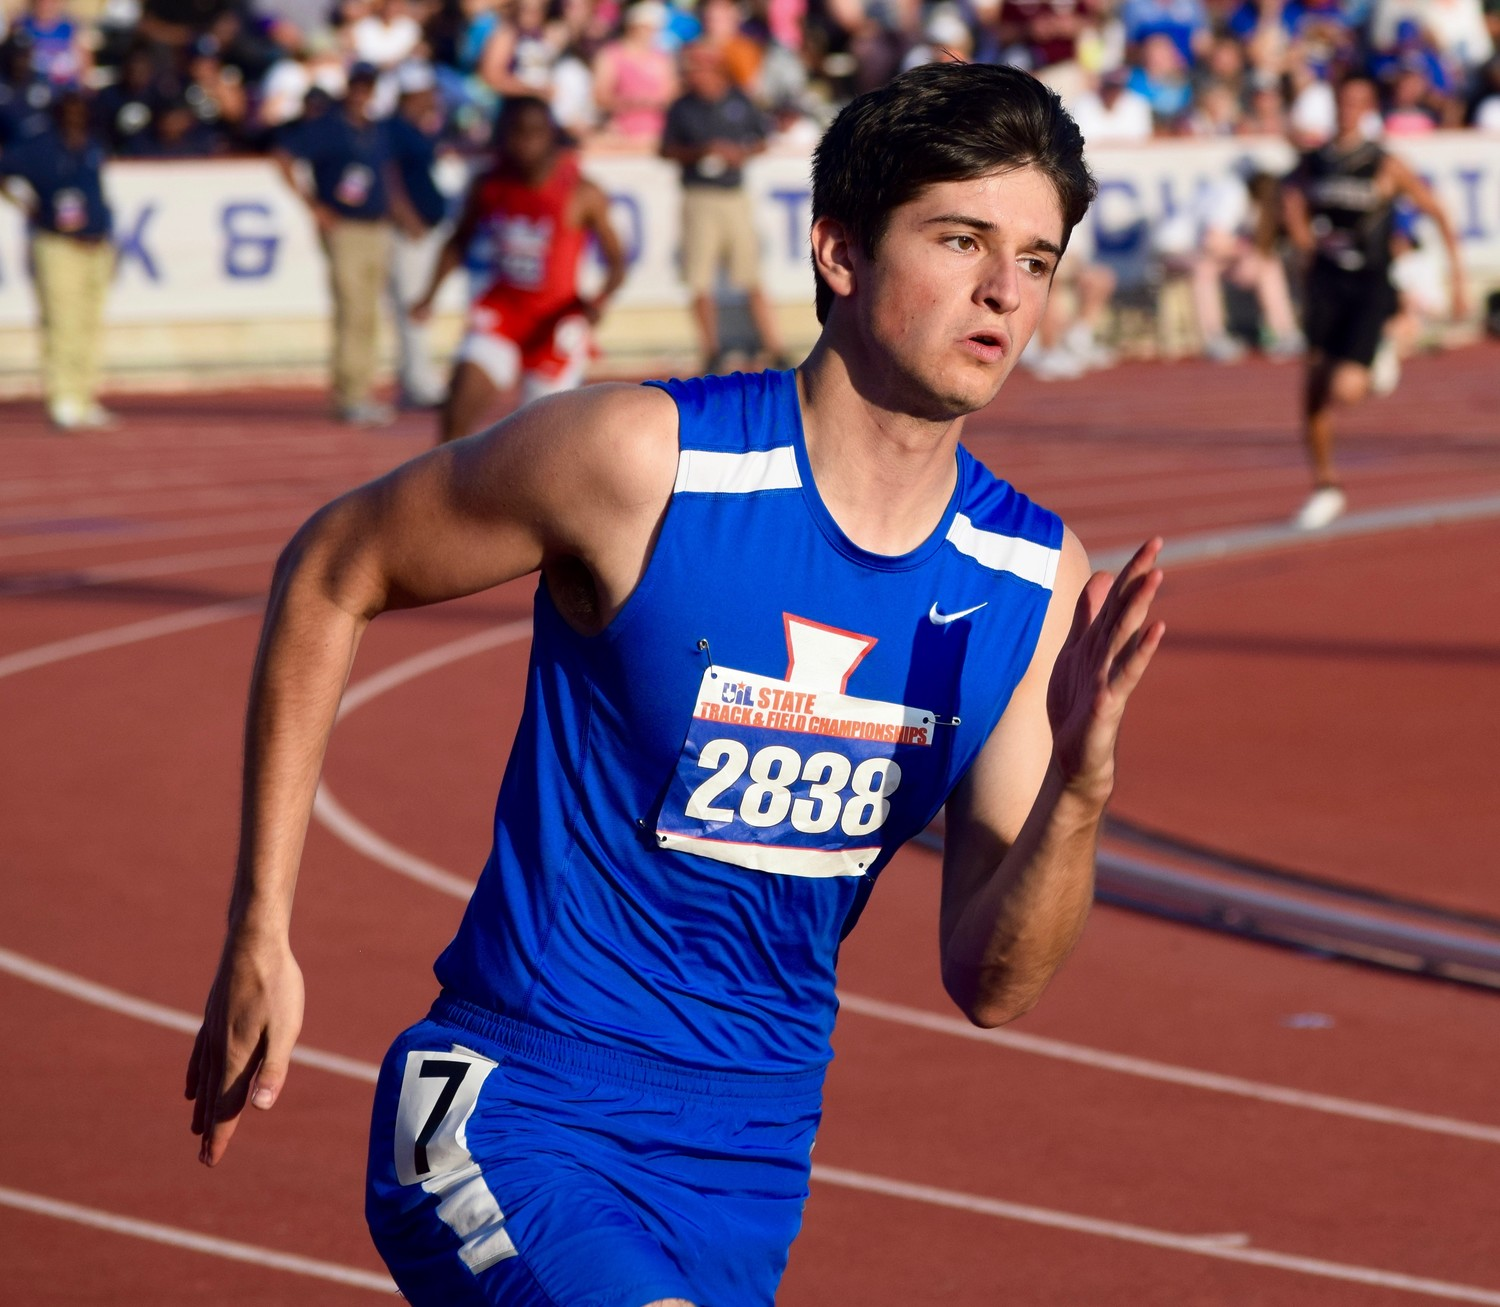 Leander senior finished ninth in the 400-meter dash with a time of 49.87 at the State Track & Field Meet on Saturday.